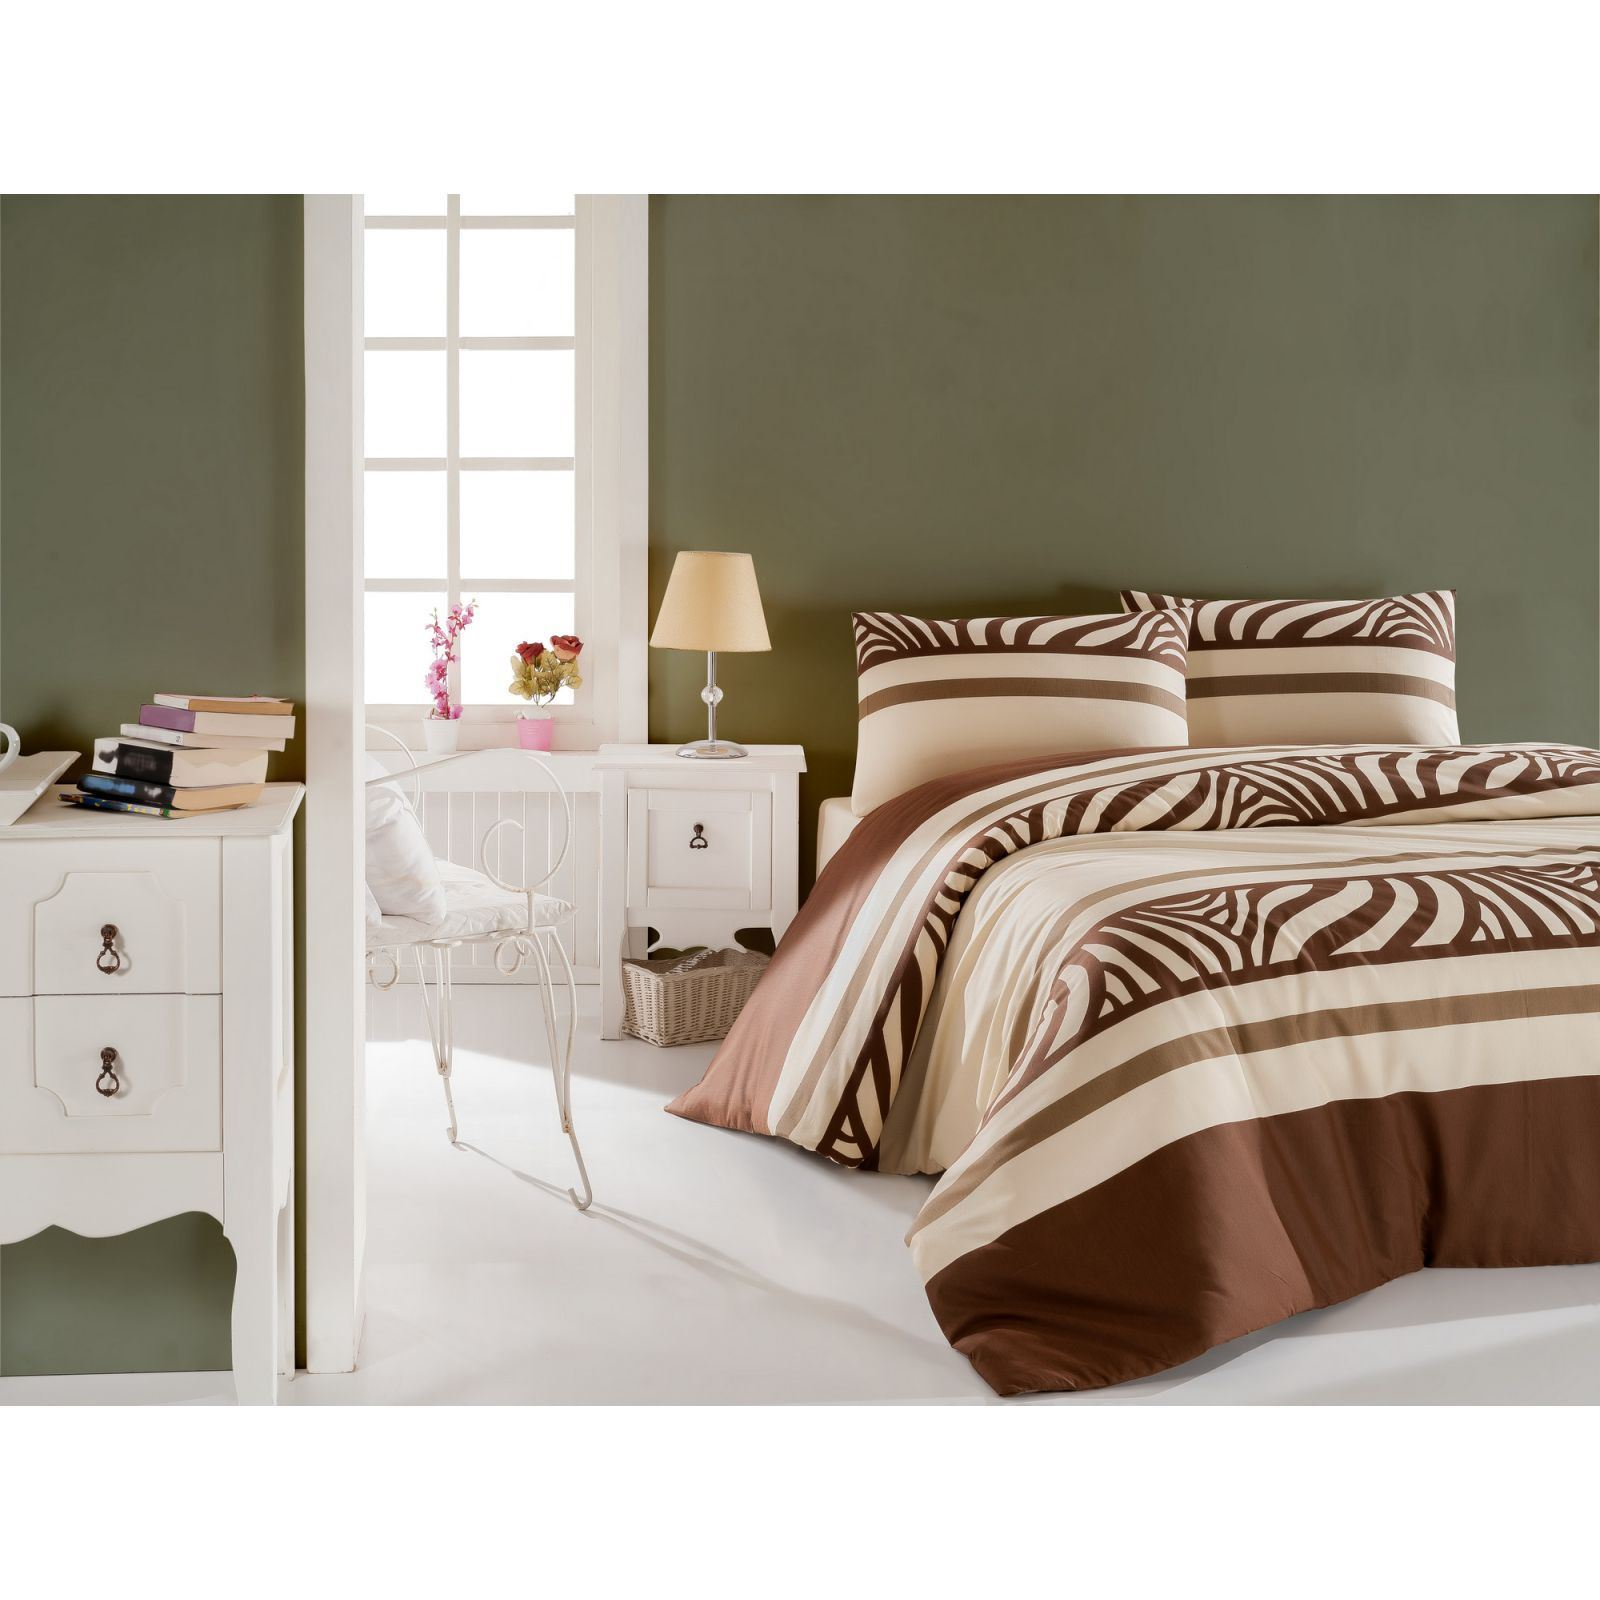 cotton box parure de lit marron brandalley. Black Bedroom Furniture Sets. Home Design Ideas